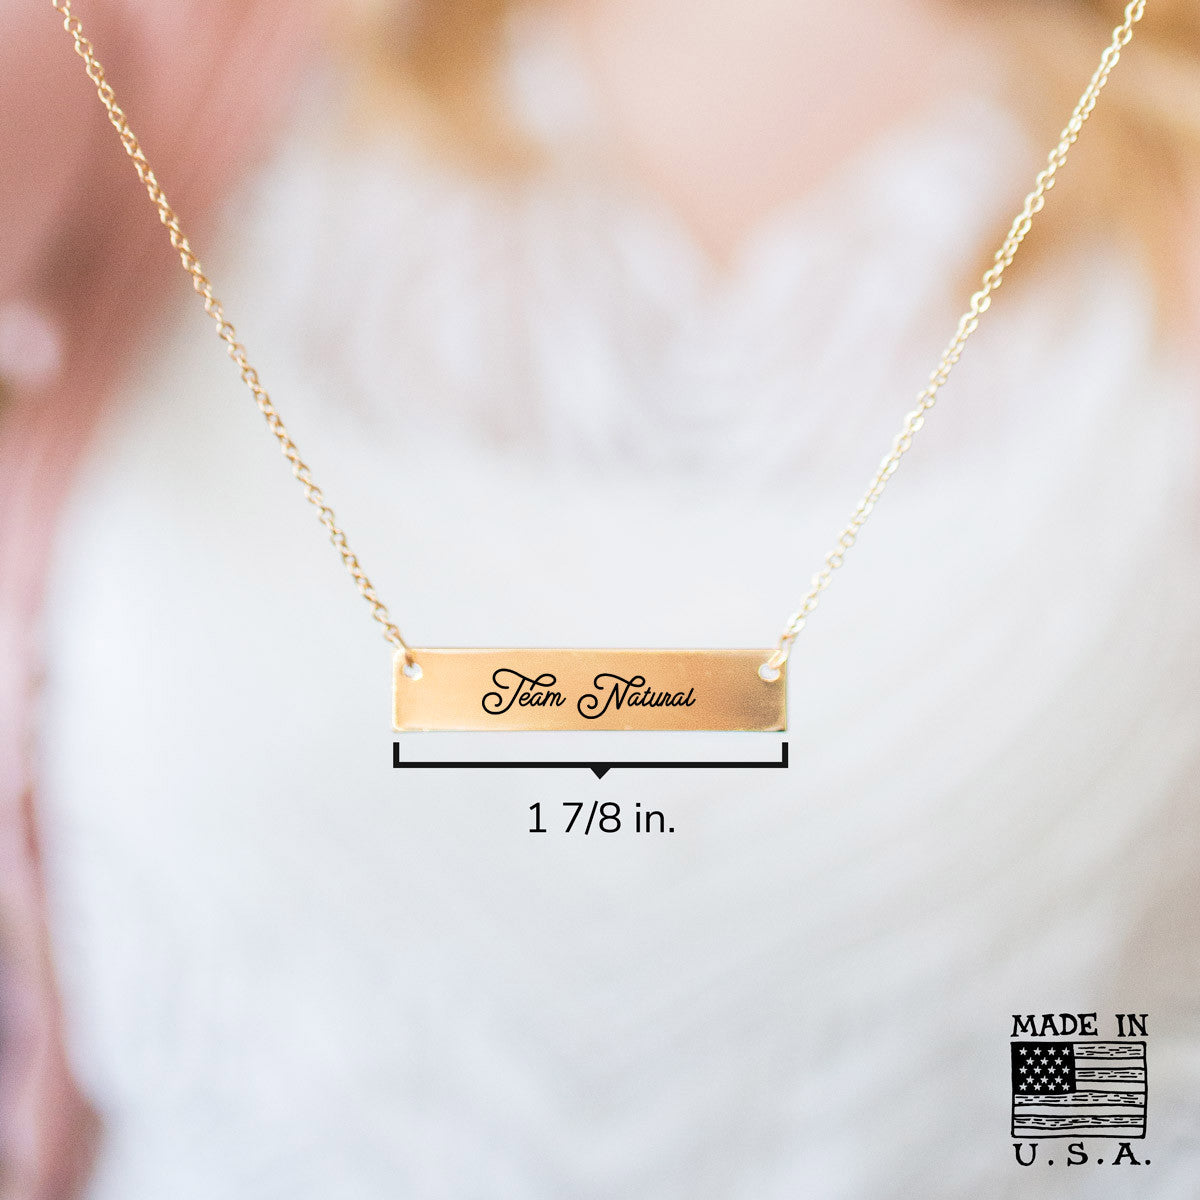 Team Natural Gold / Silver Bar Necklace